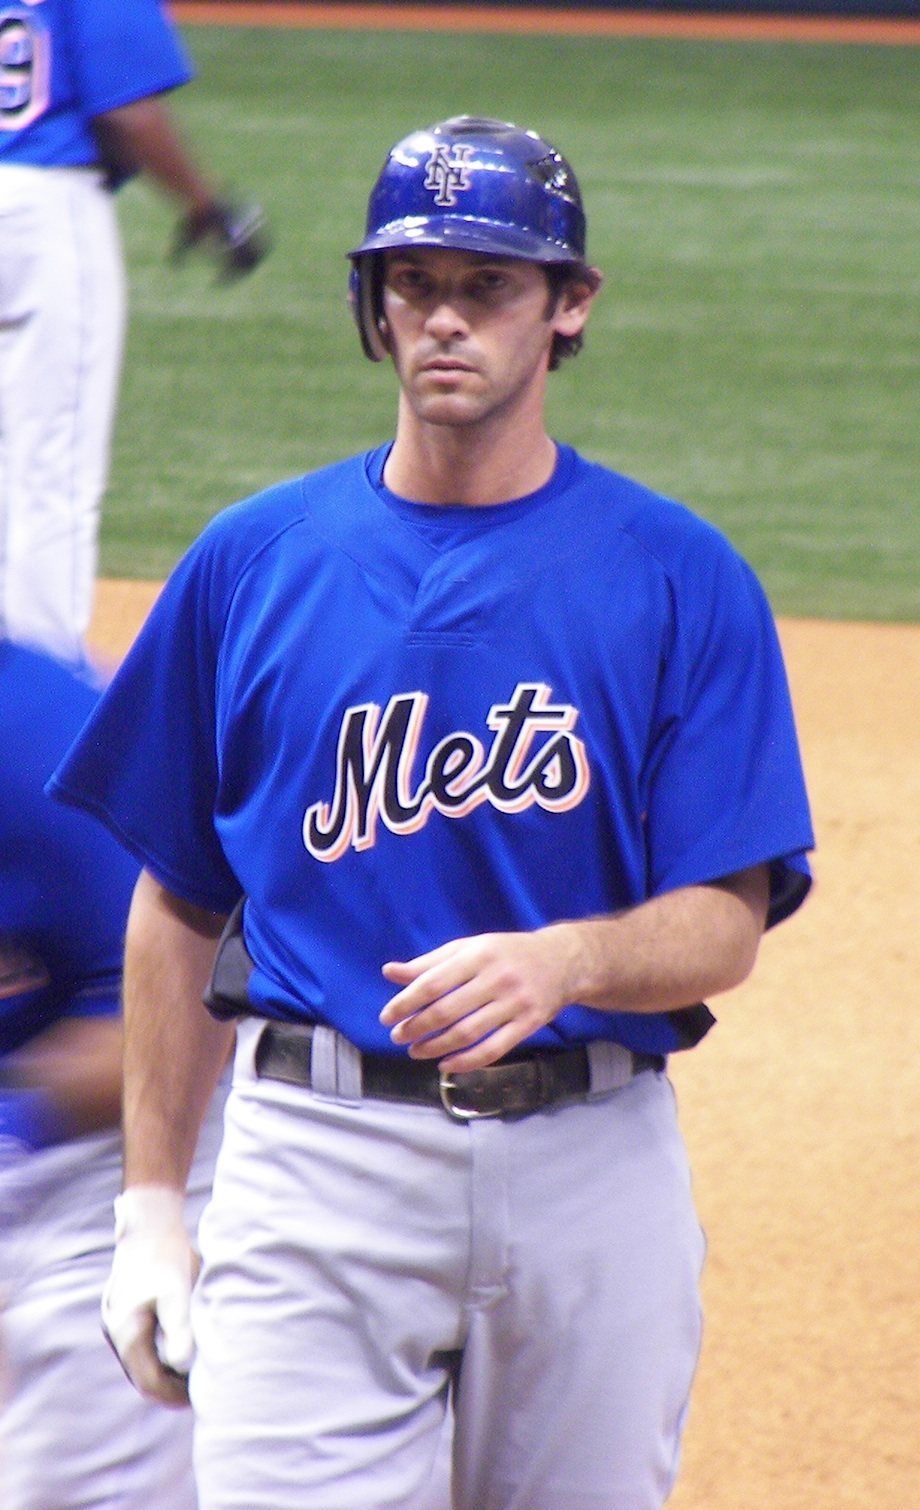 Click photo to download. Caption: Former Major League outfielder/first baseman Shawn Green. Credit: Wknight94.